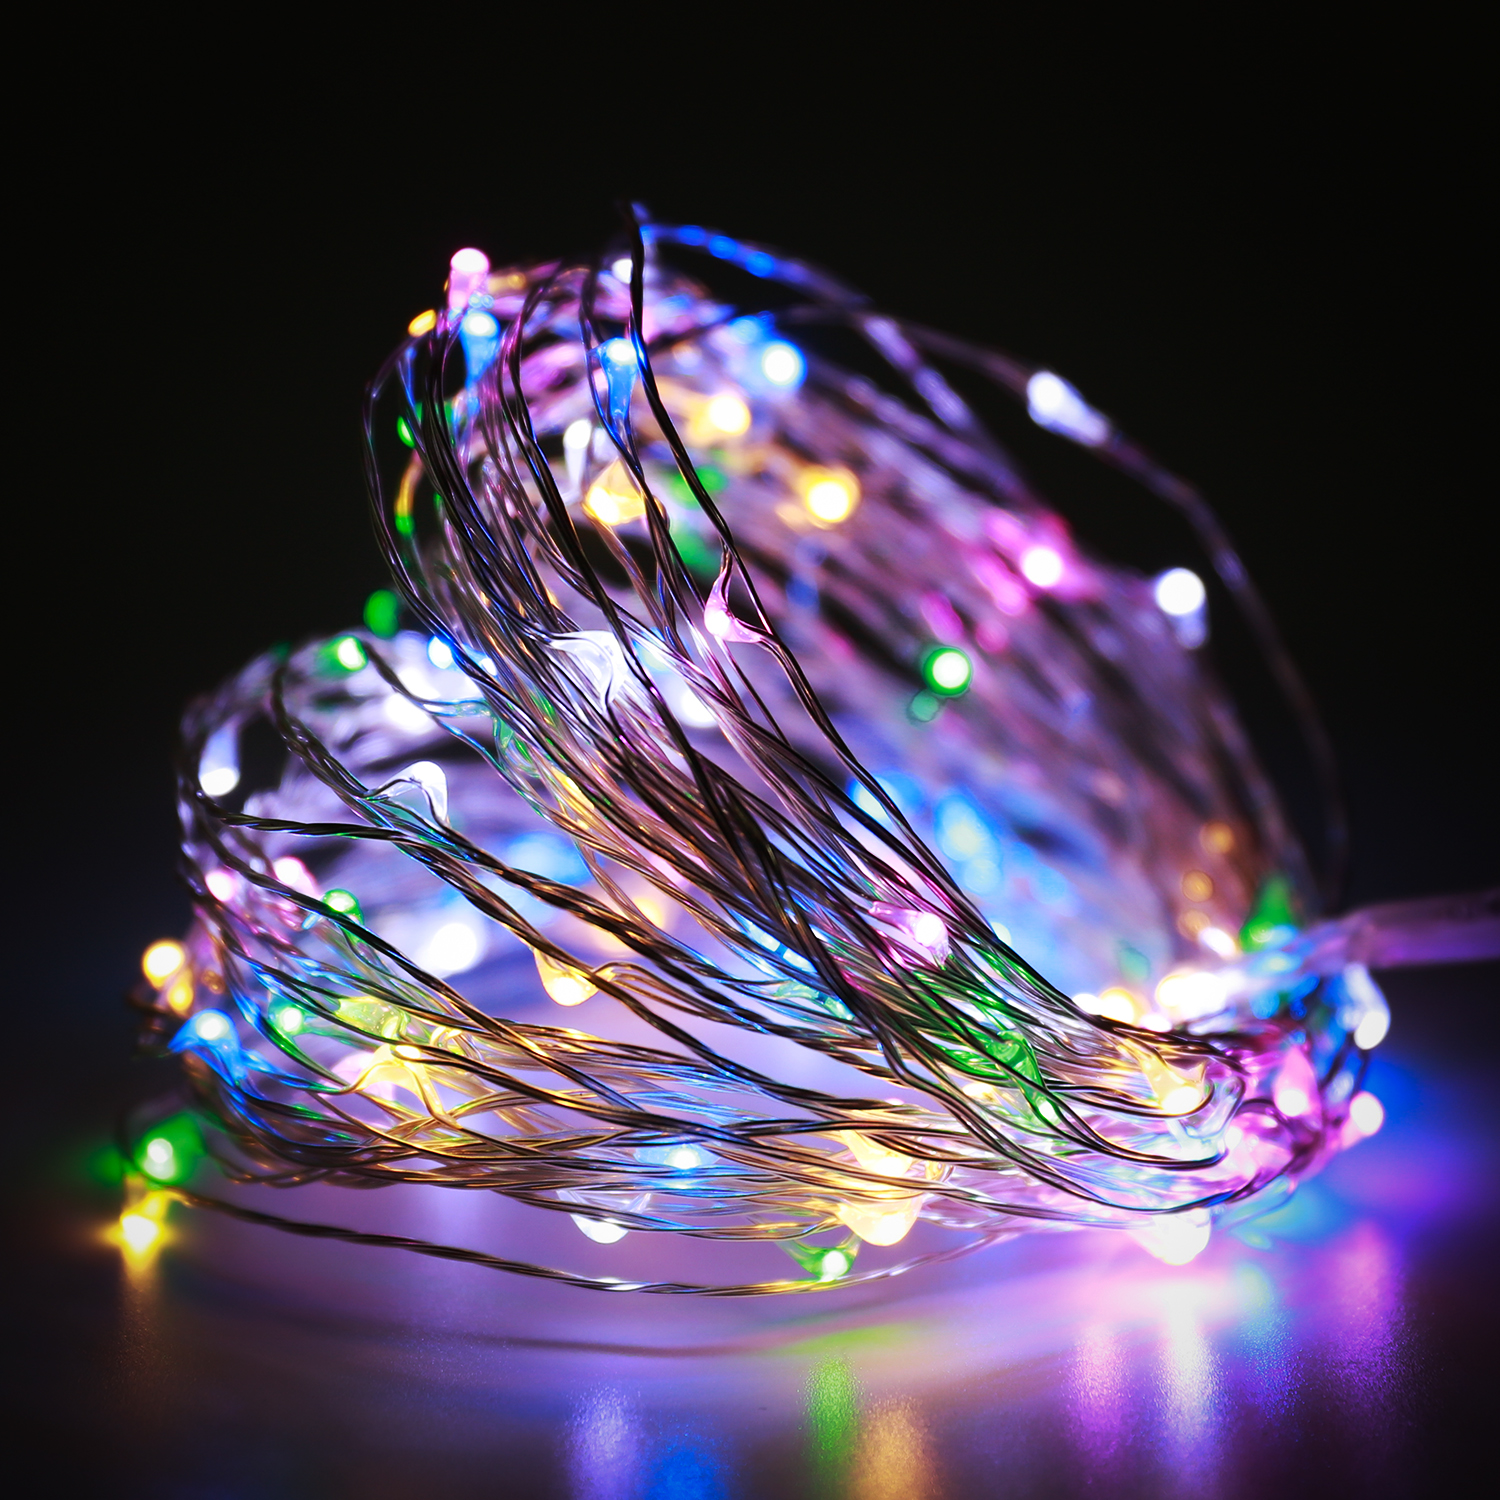 Design Light Ropes And Strings light ropes and strings landscape lighting with rope lights kohree usb led fairy starry string decorative ft copper wire for light